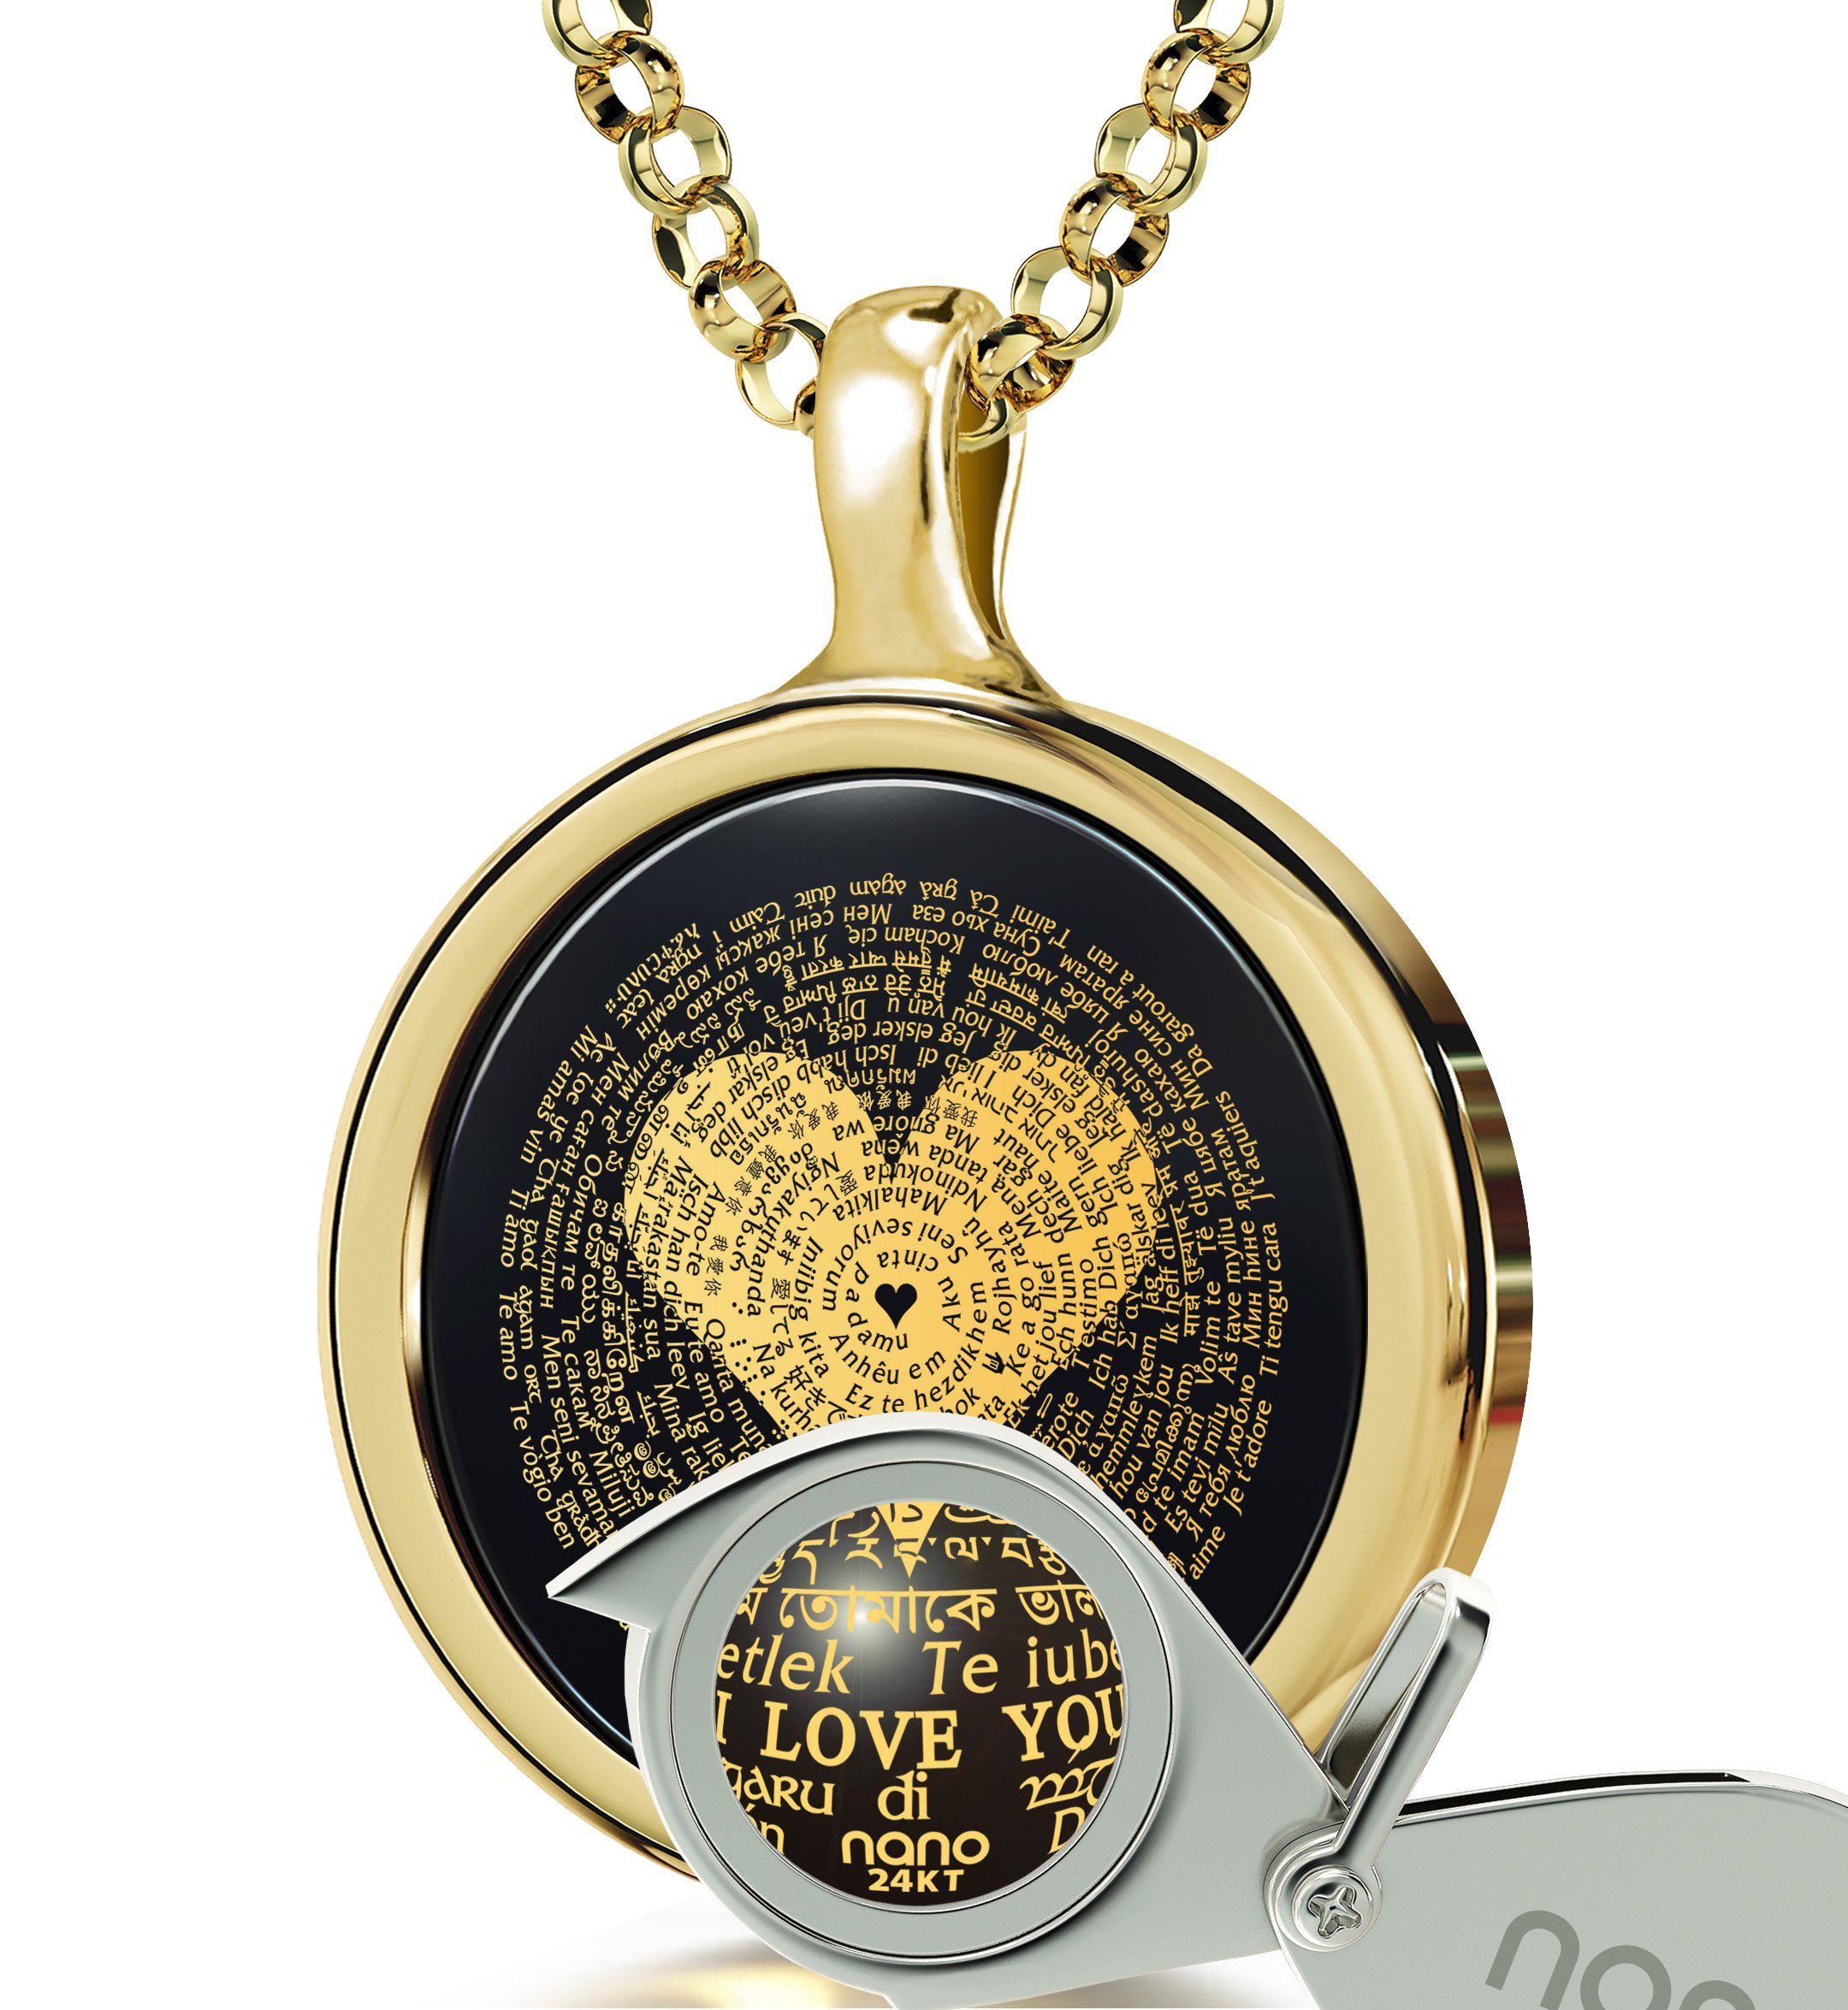 14k Yellow Gold I Love You Necklace 24k Gold Inscribed 120 Languages Onyx Pendant, 18'' Gold Filled Chain by Nano Jewelry (Image #3)